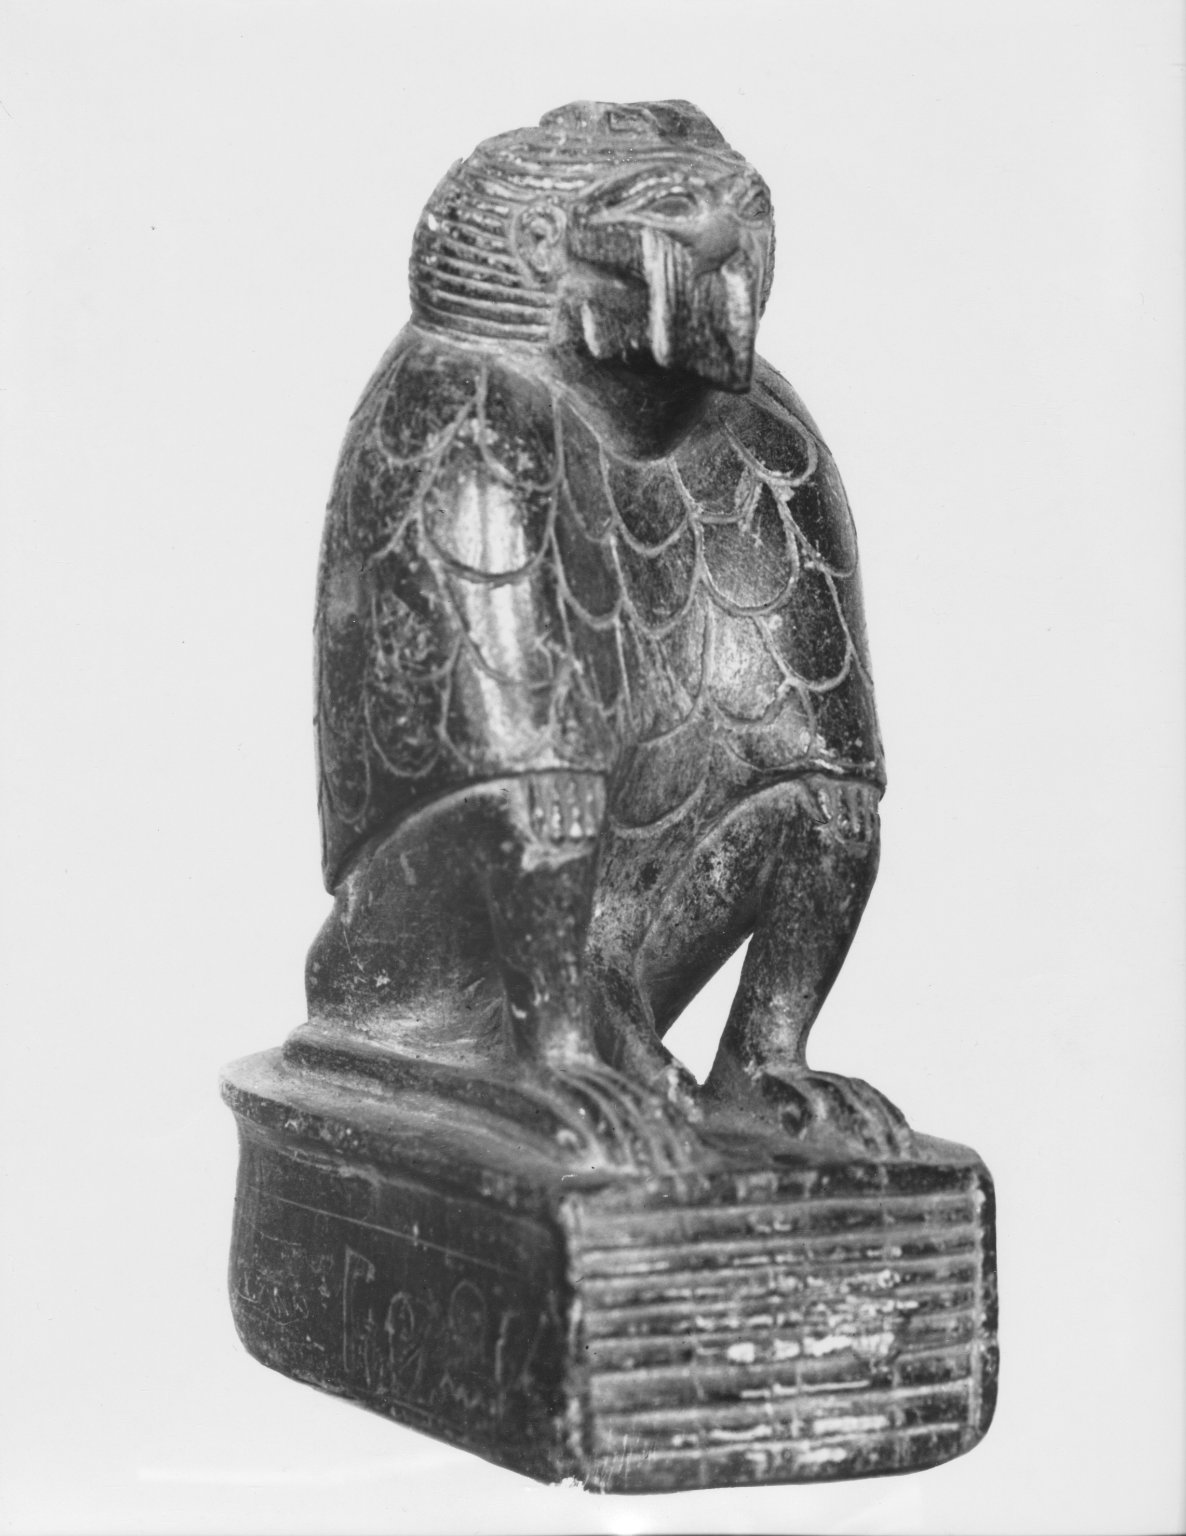 Brooklyn Museum: Figure of a Cynocephalus Ape